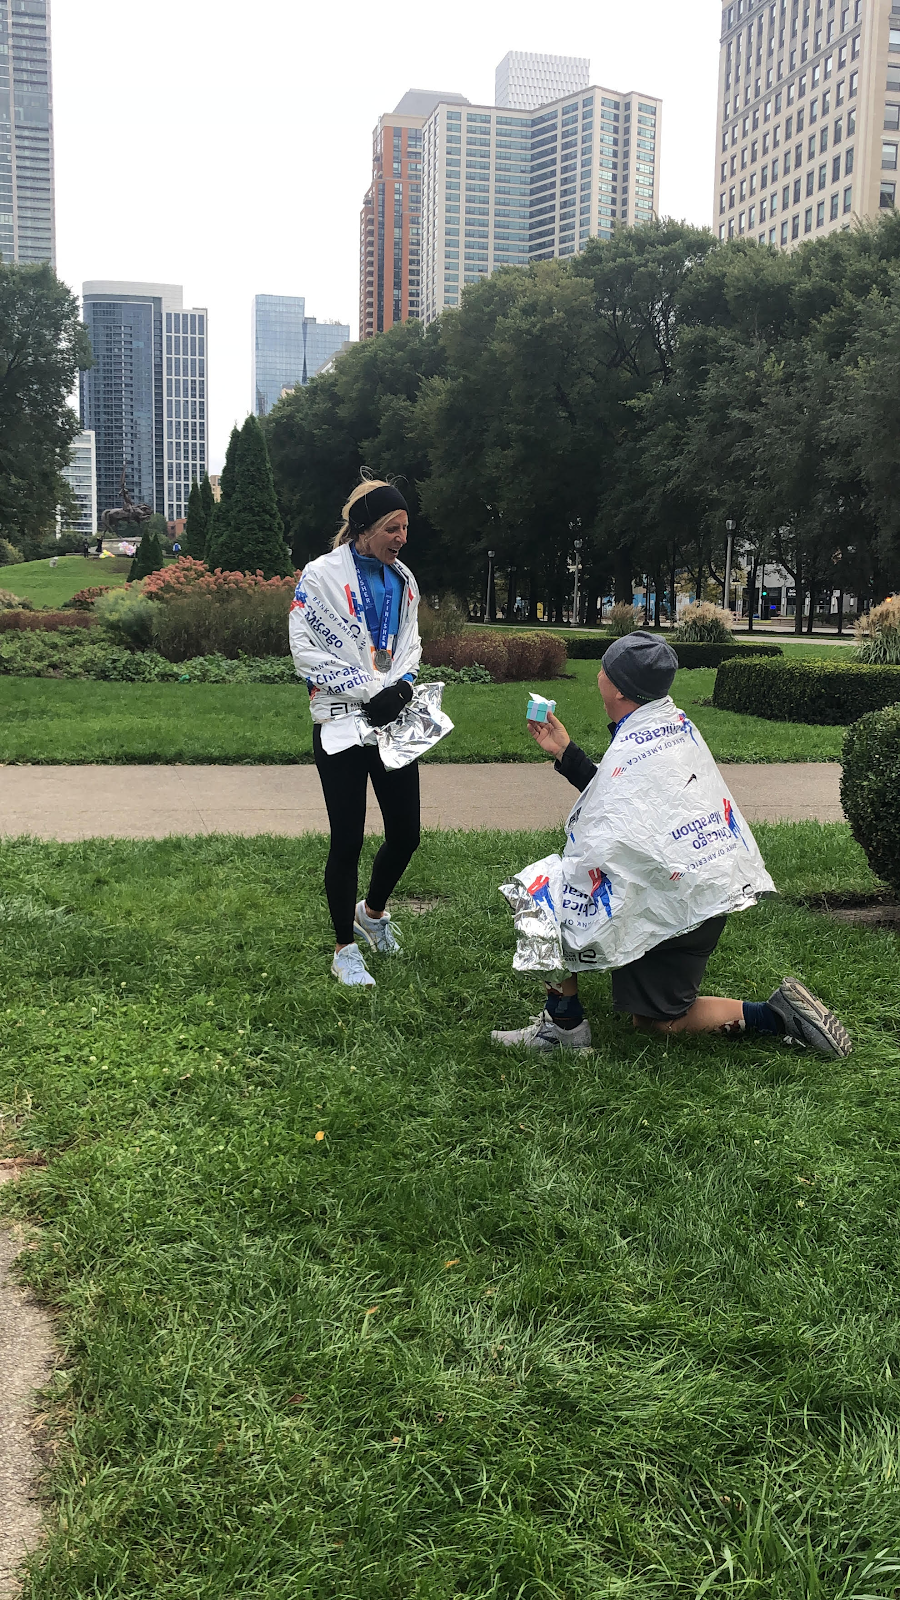 Proposal at the Finish Line: 